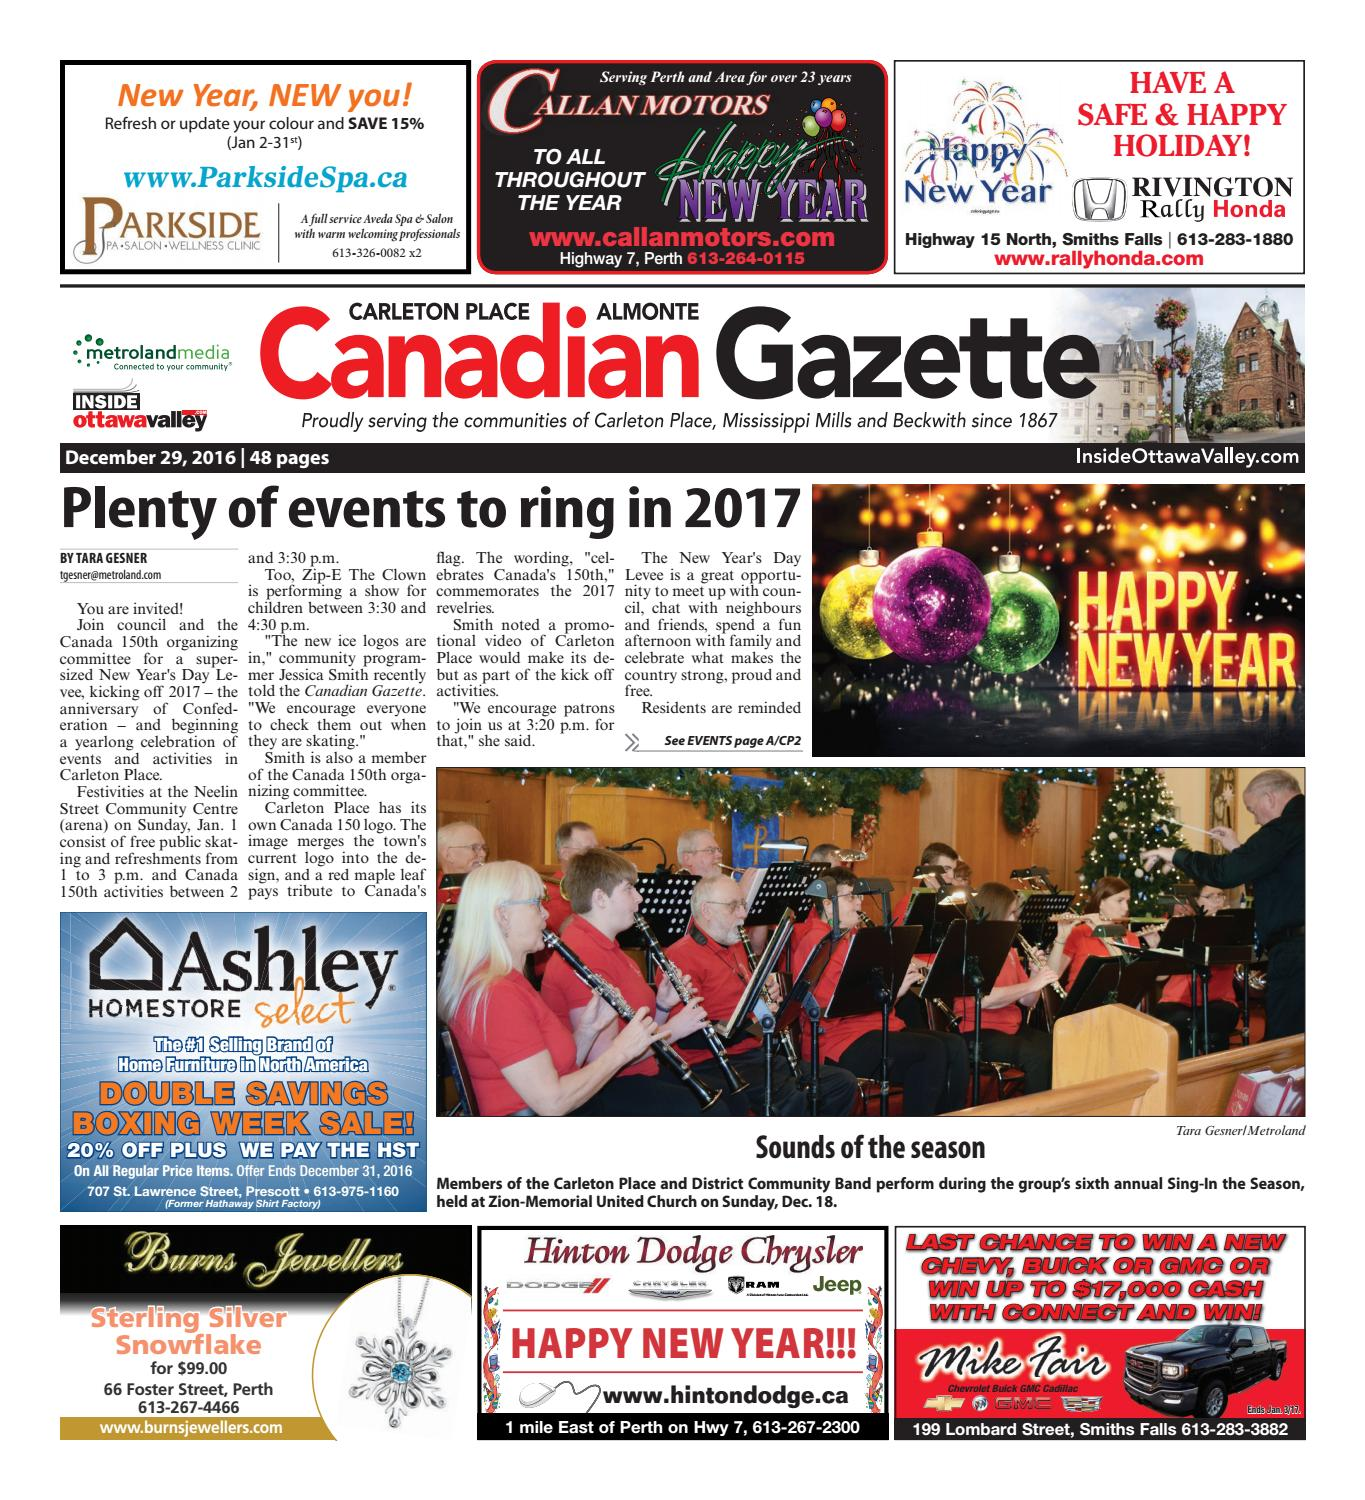 Almontecarletonplace122916 by metroland east almonte carleton almontecarletonplace122916 by metroland east almonte carleton place canadian gazette issuu fandeluxe Gallery